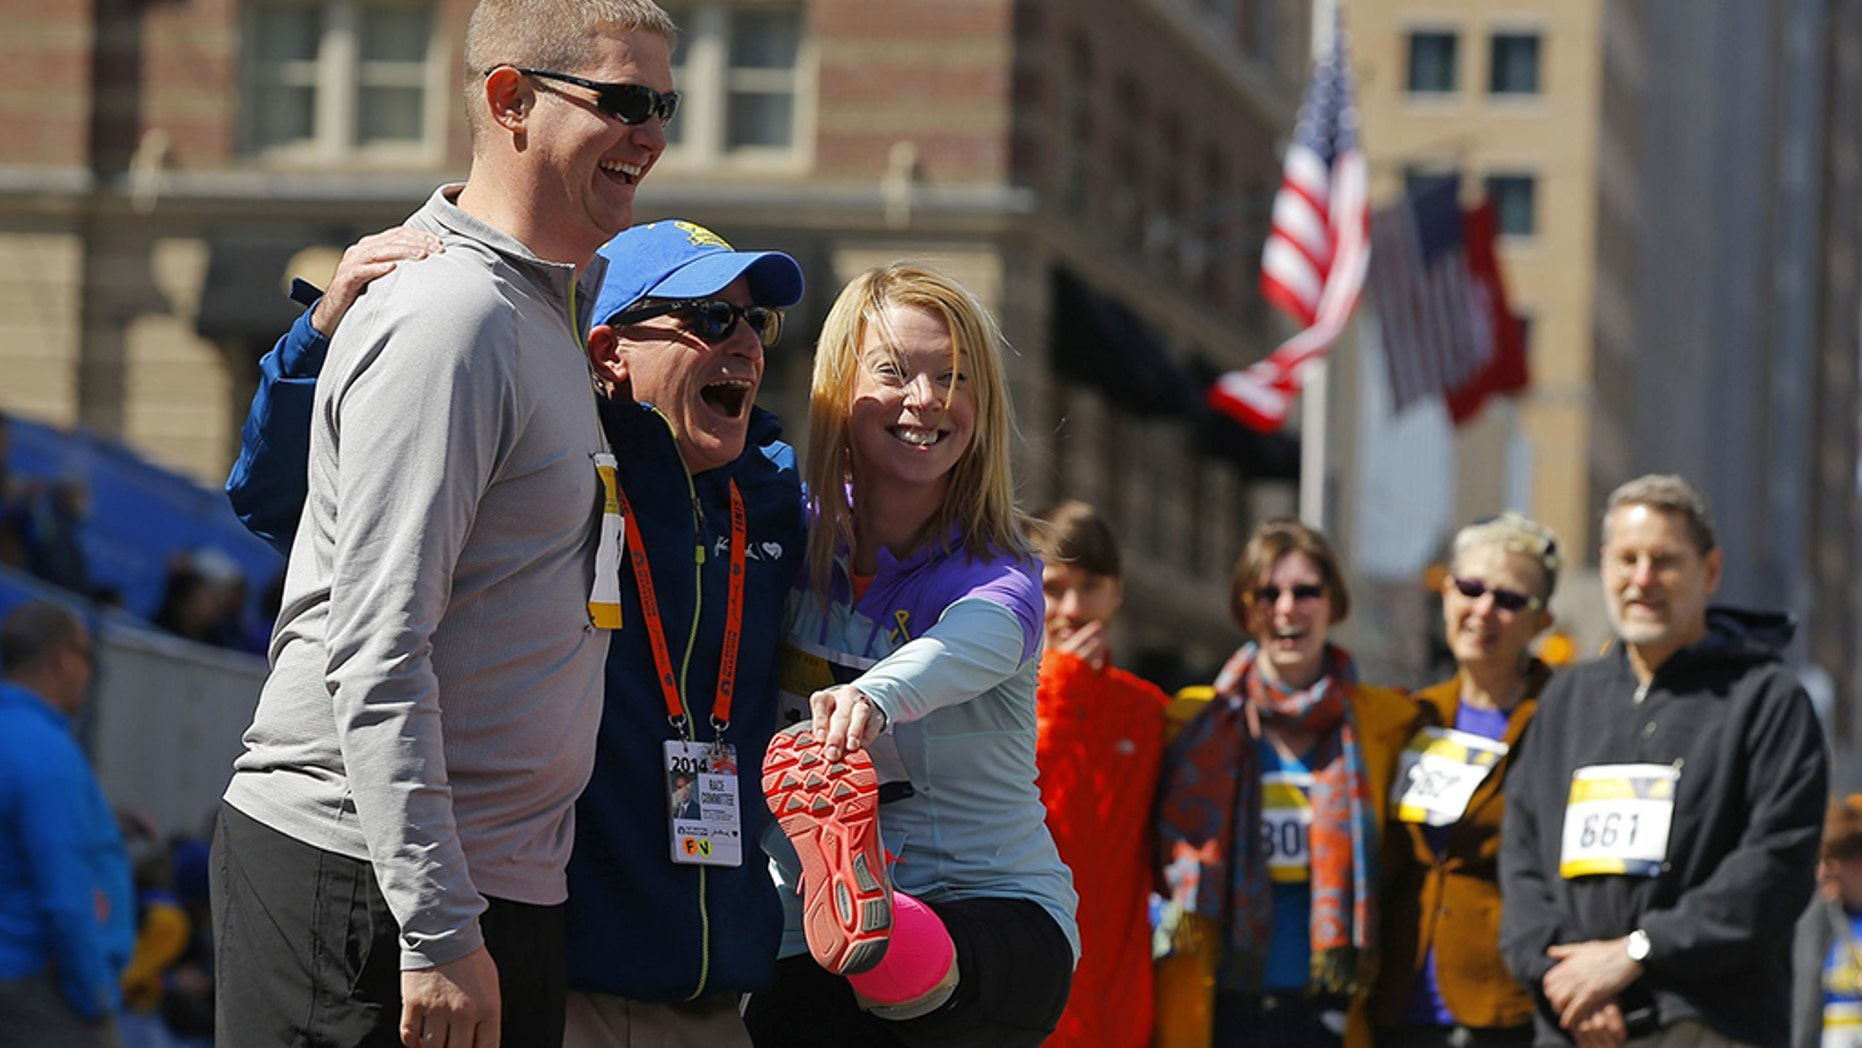 Boston Marathon amputee struck by car, sent to hospital